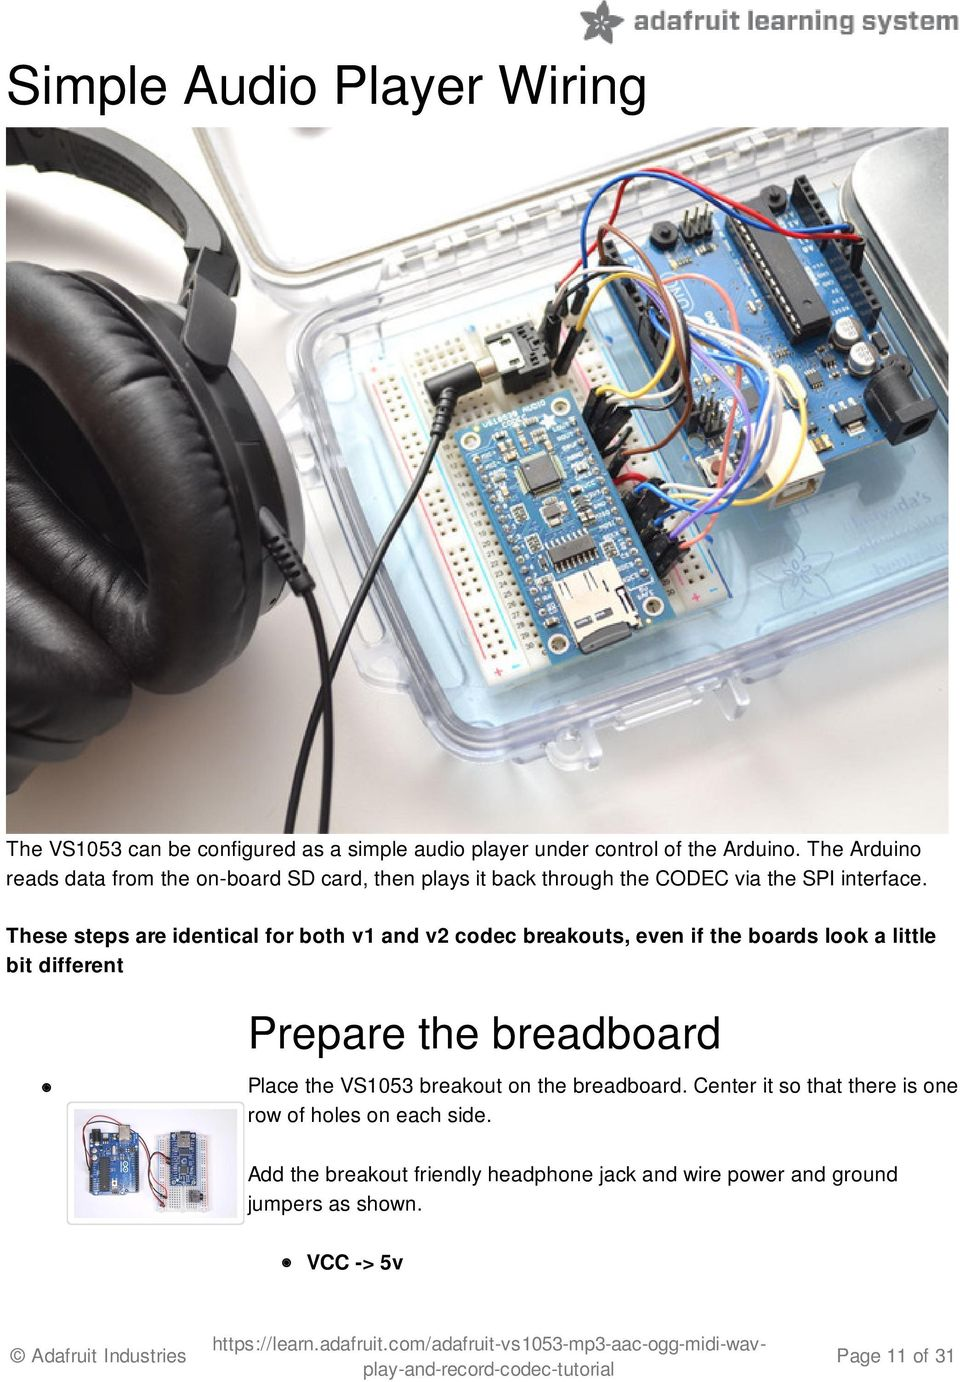 Adafruit Vs1053 Mp3 Aac Ogg Midi Wav Codec Breakout Tutorial Pdf Wiring Power Switch These Steps Are Identical For Both V1 And V2 Breakouts Even If The Boards